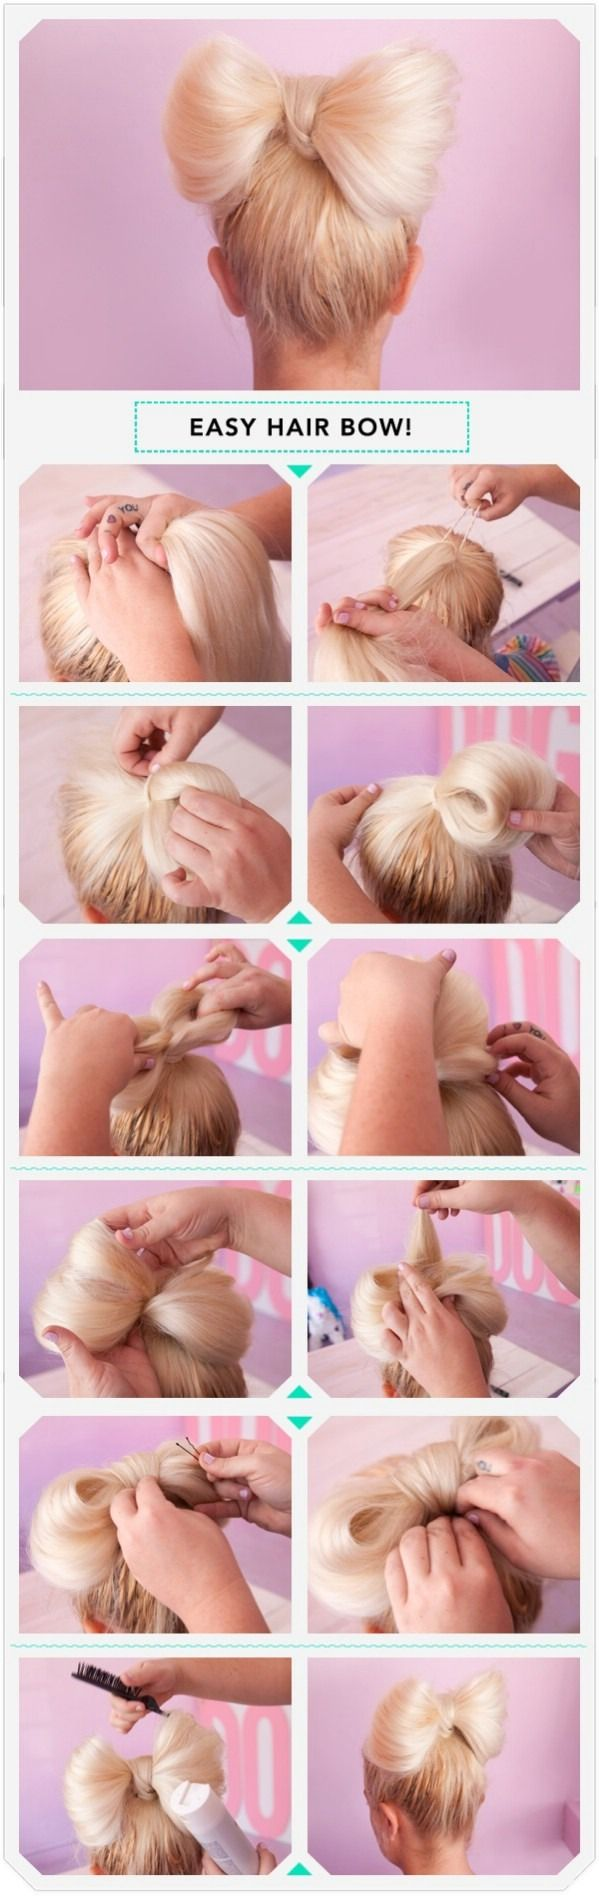 How To Put Your Hair In A Bow!How to bow your hair!Please like and for more tips go check out my profile. A follow would be lovely ✌️!